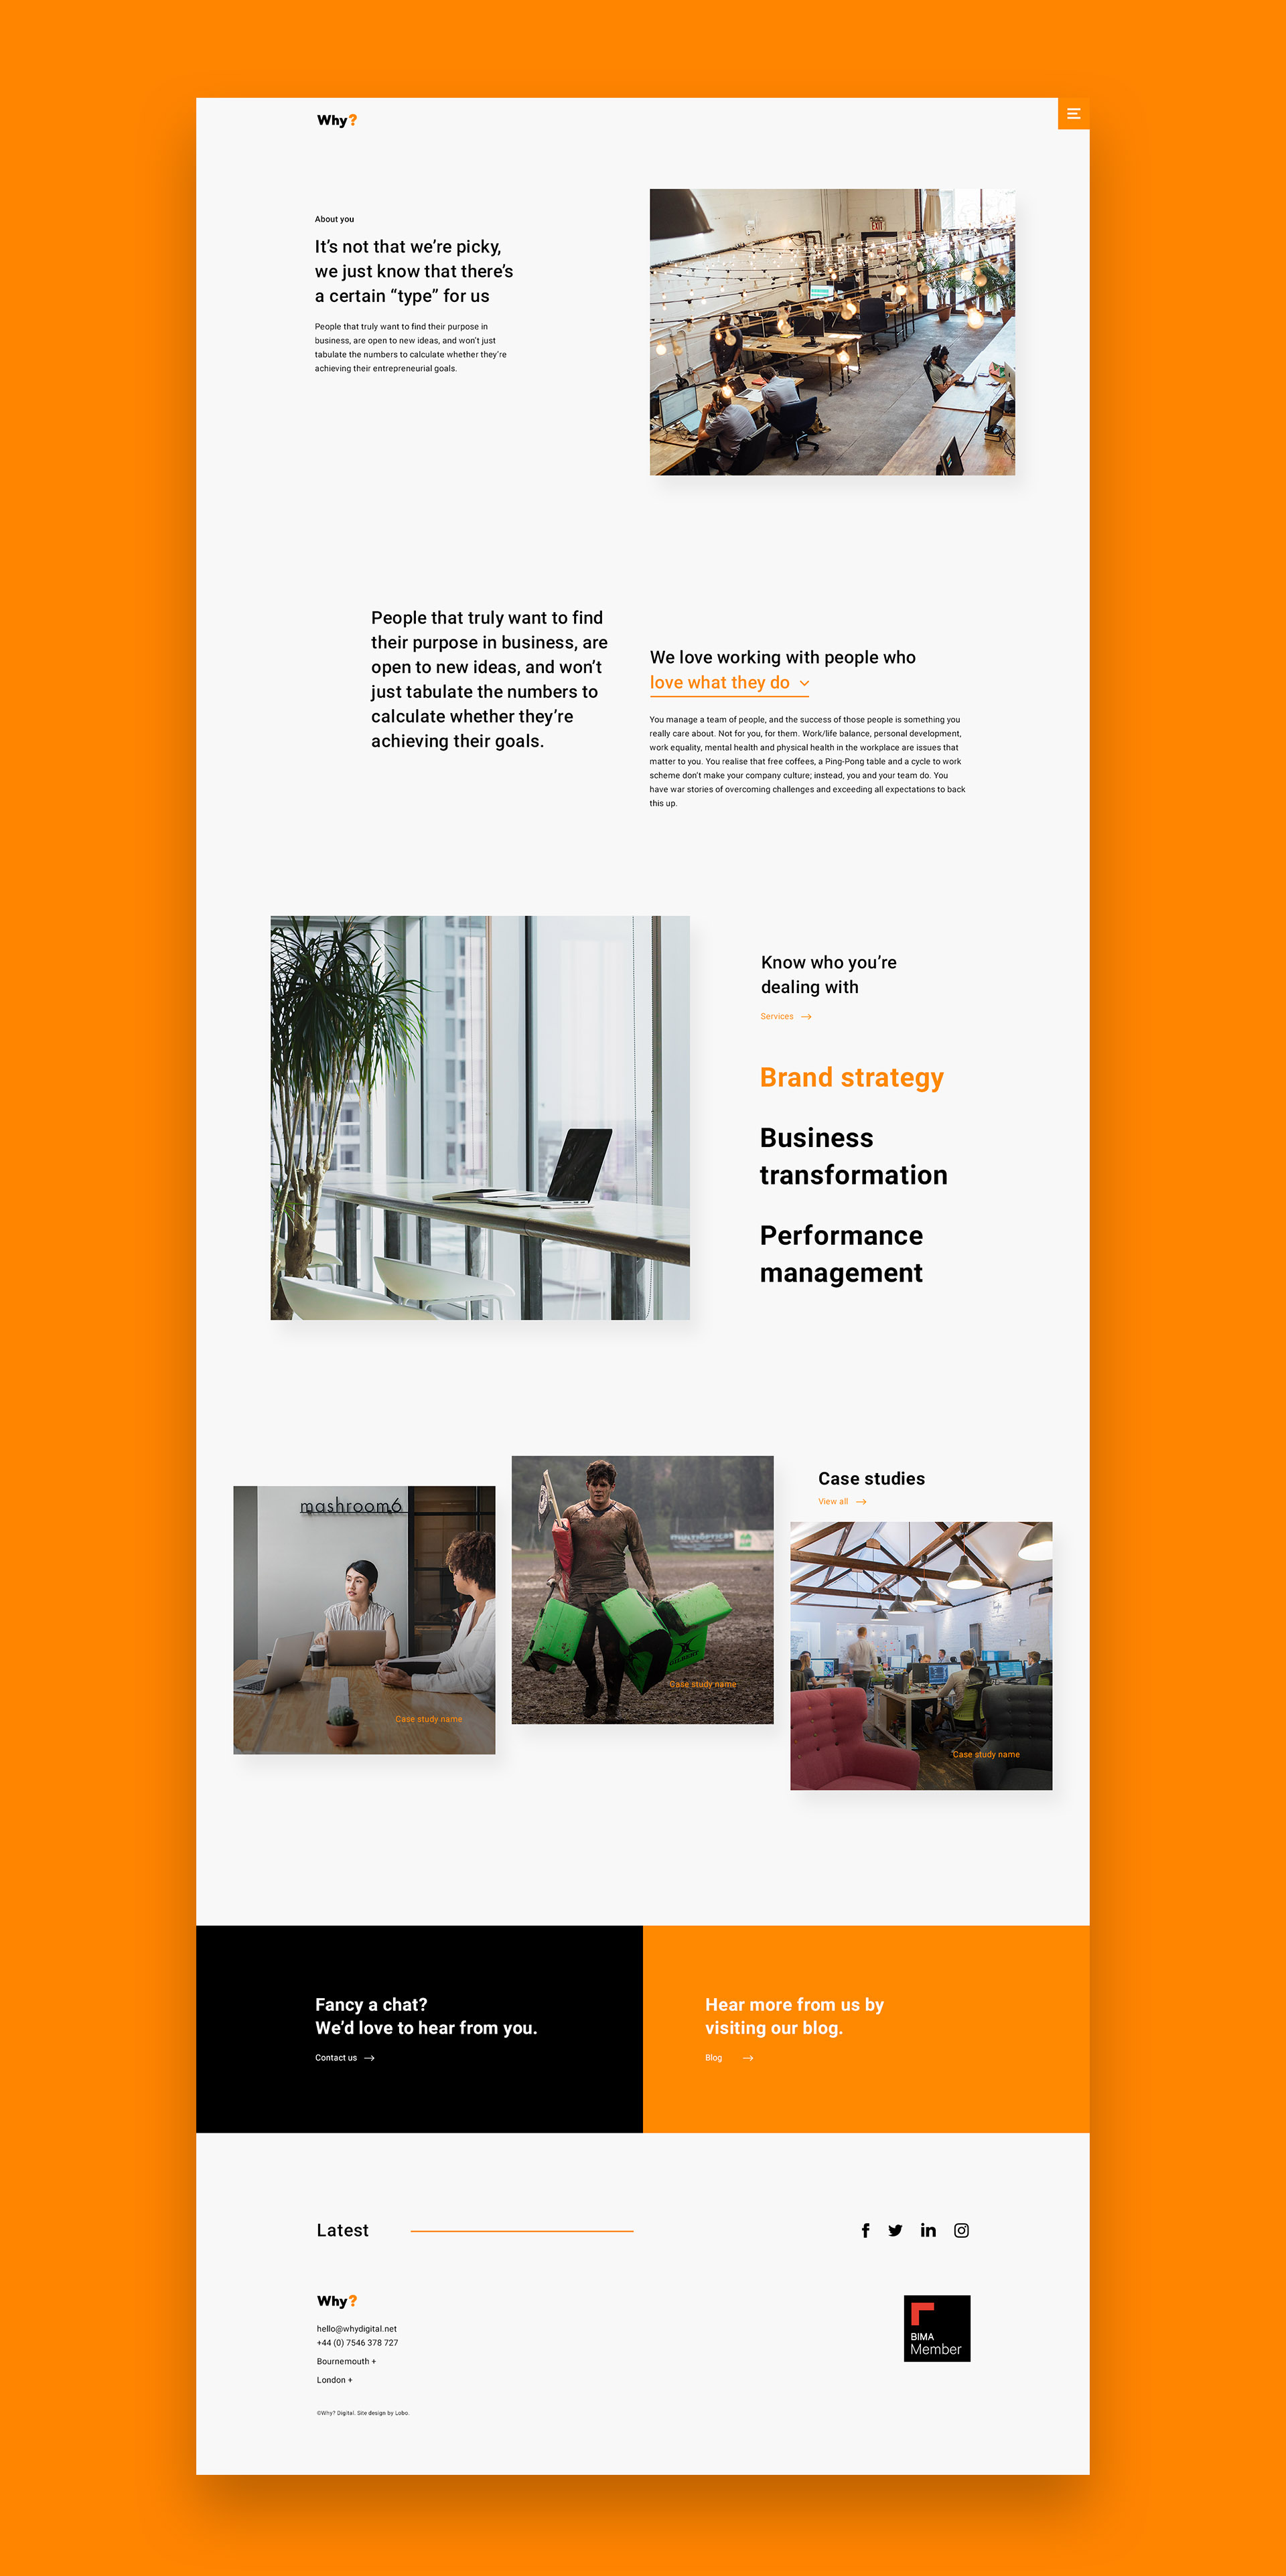 06 Lobo Creative - Why Digital - Bournemouth website design case study.jpg